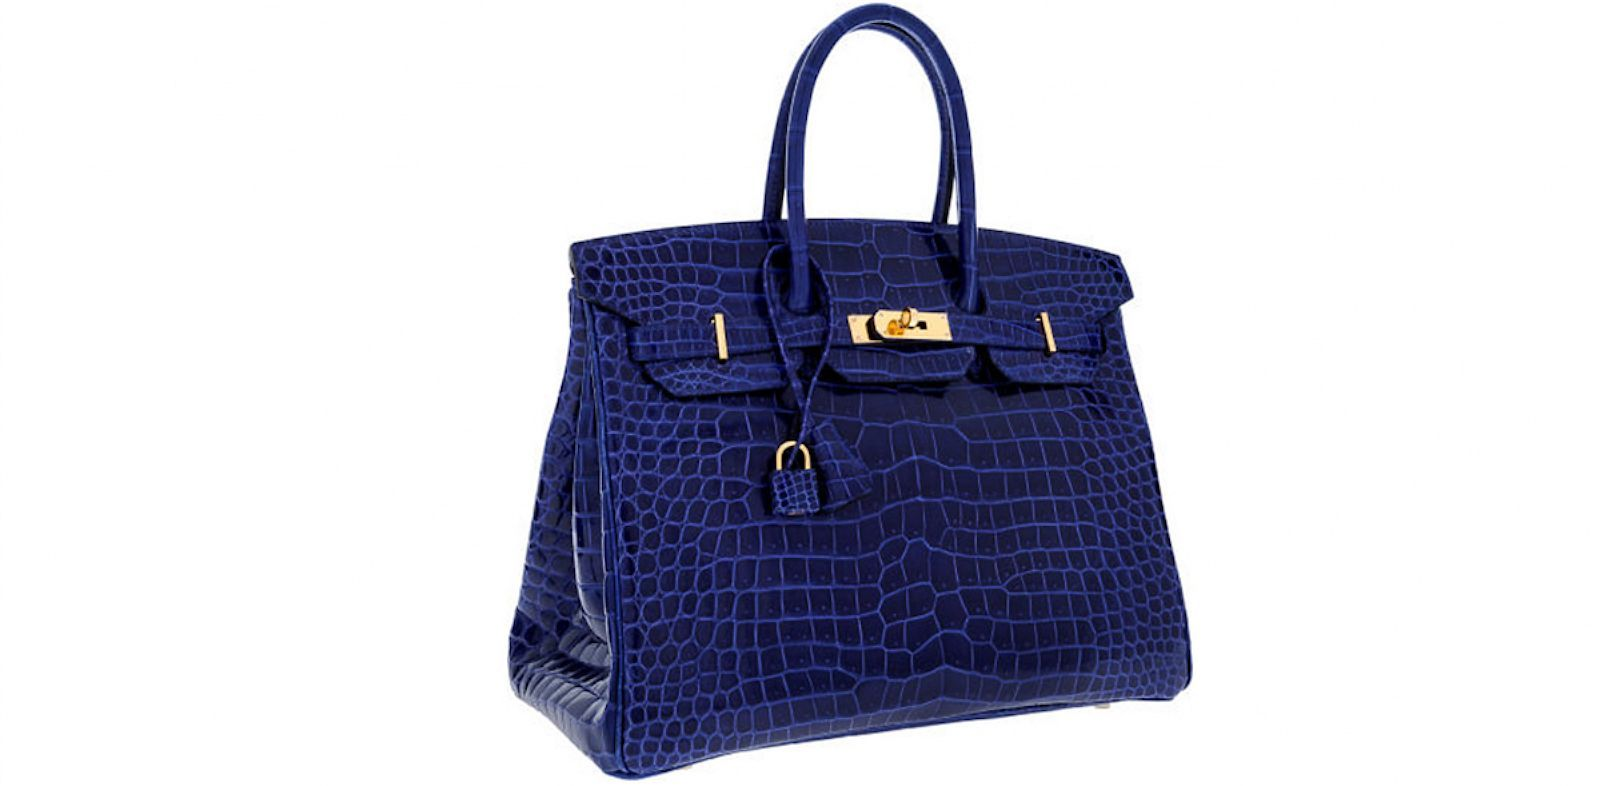 The Hermès Birkin bag, a line of bags made by the French luxury retailer and inspired by British actress Jane Birkin, has played a major part in attracting bona-fide collectors. Description from abcnews.go.com. I searched for this on bing.com/images